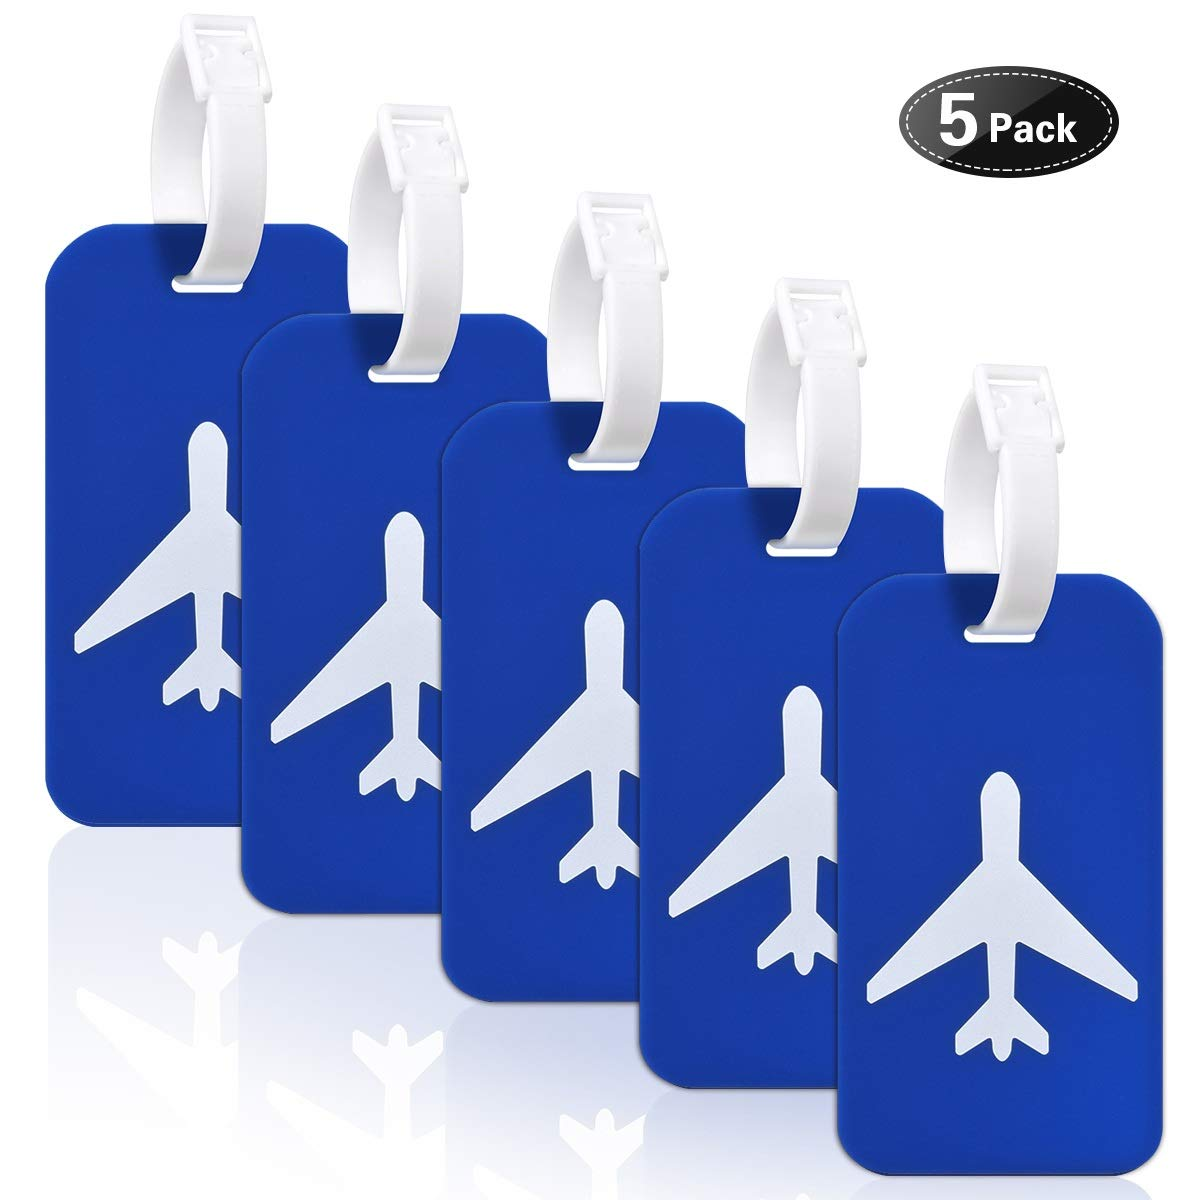 Large Silicon Luggage Tags with Name ID Cards for Luggage Baggage Travel Identifier By Ovener (Blue 5Pack)